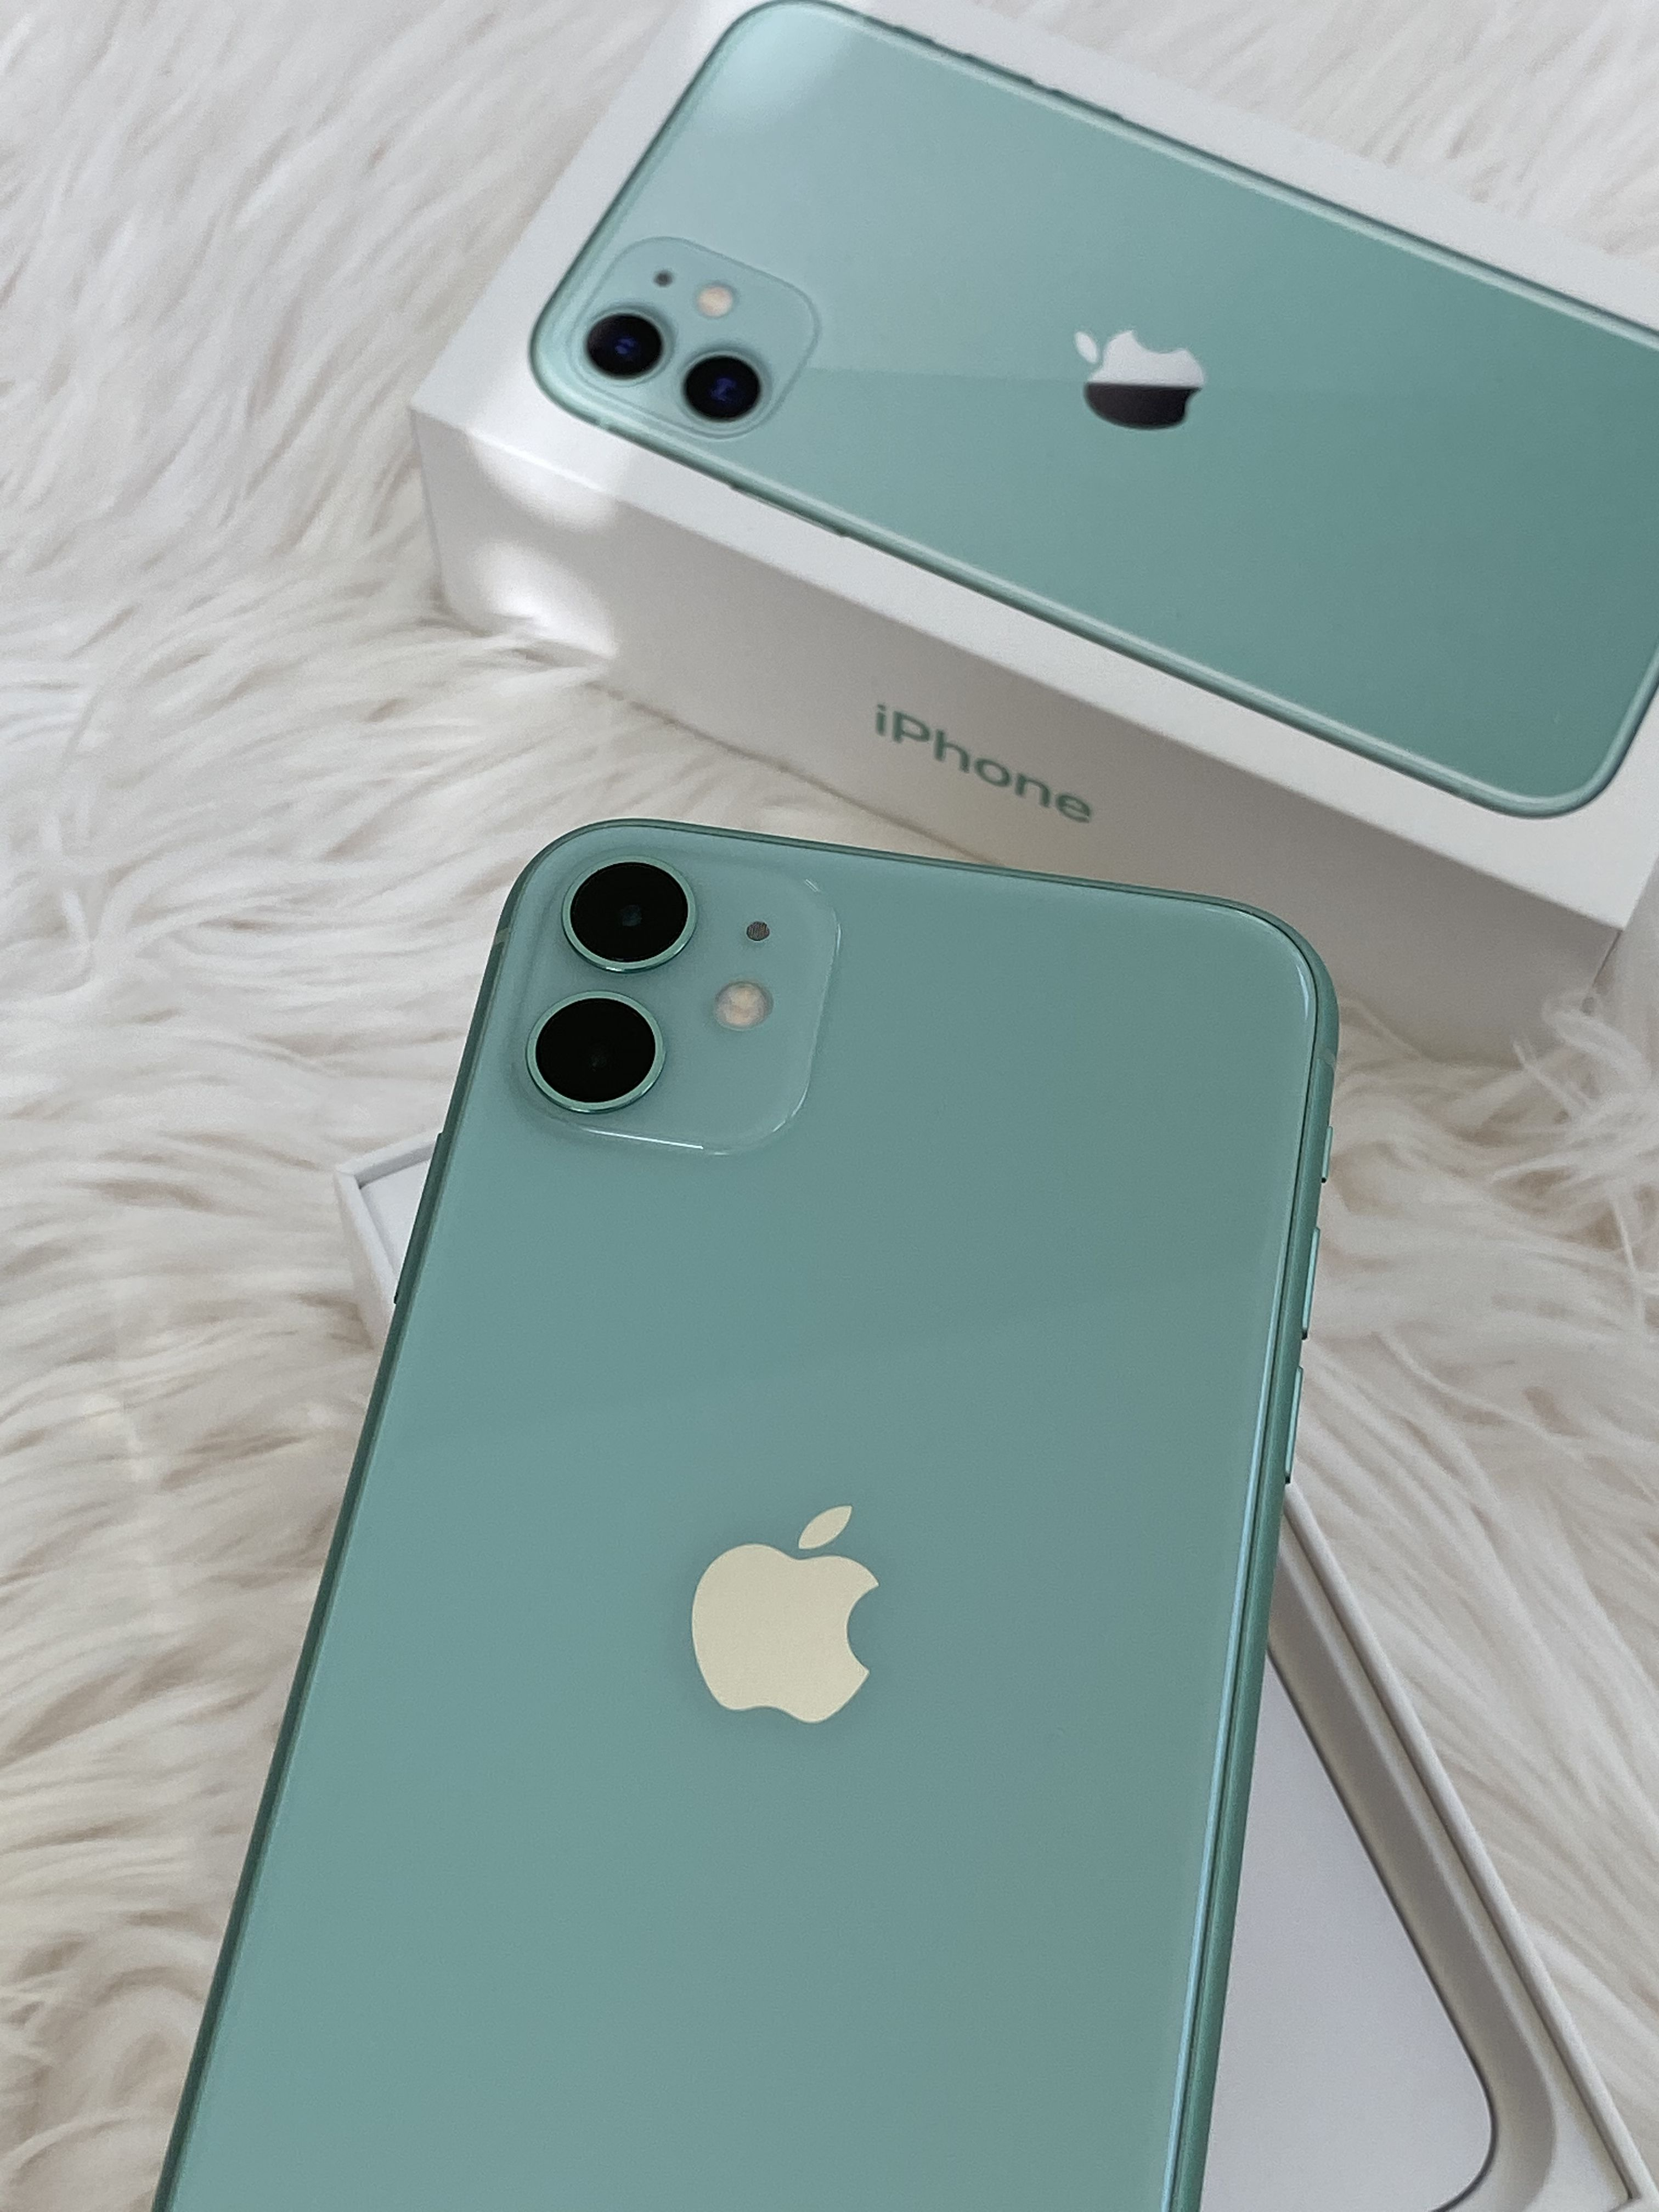 New iPhone 11 in Green! Shop cases for iPhone 11, iPhone